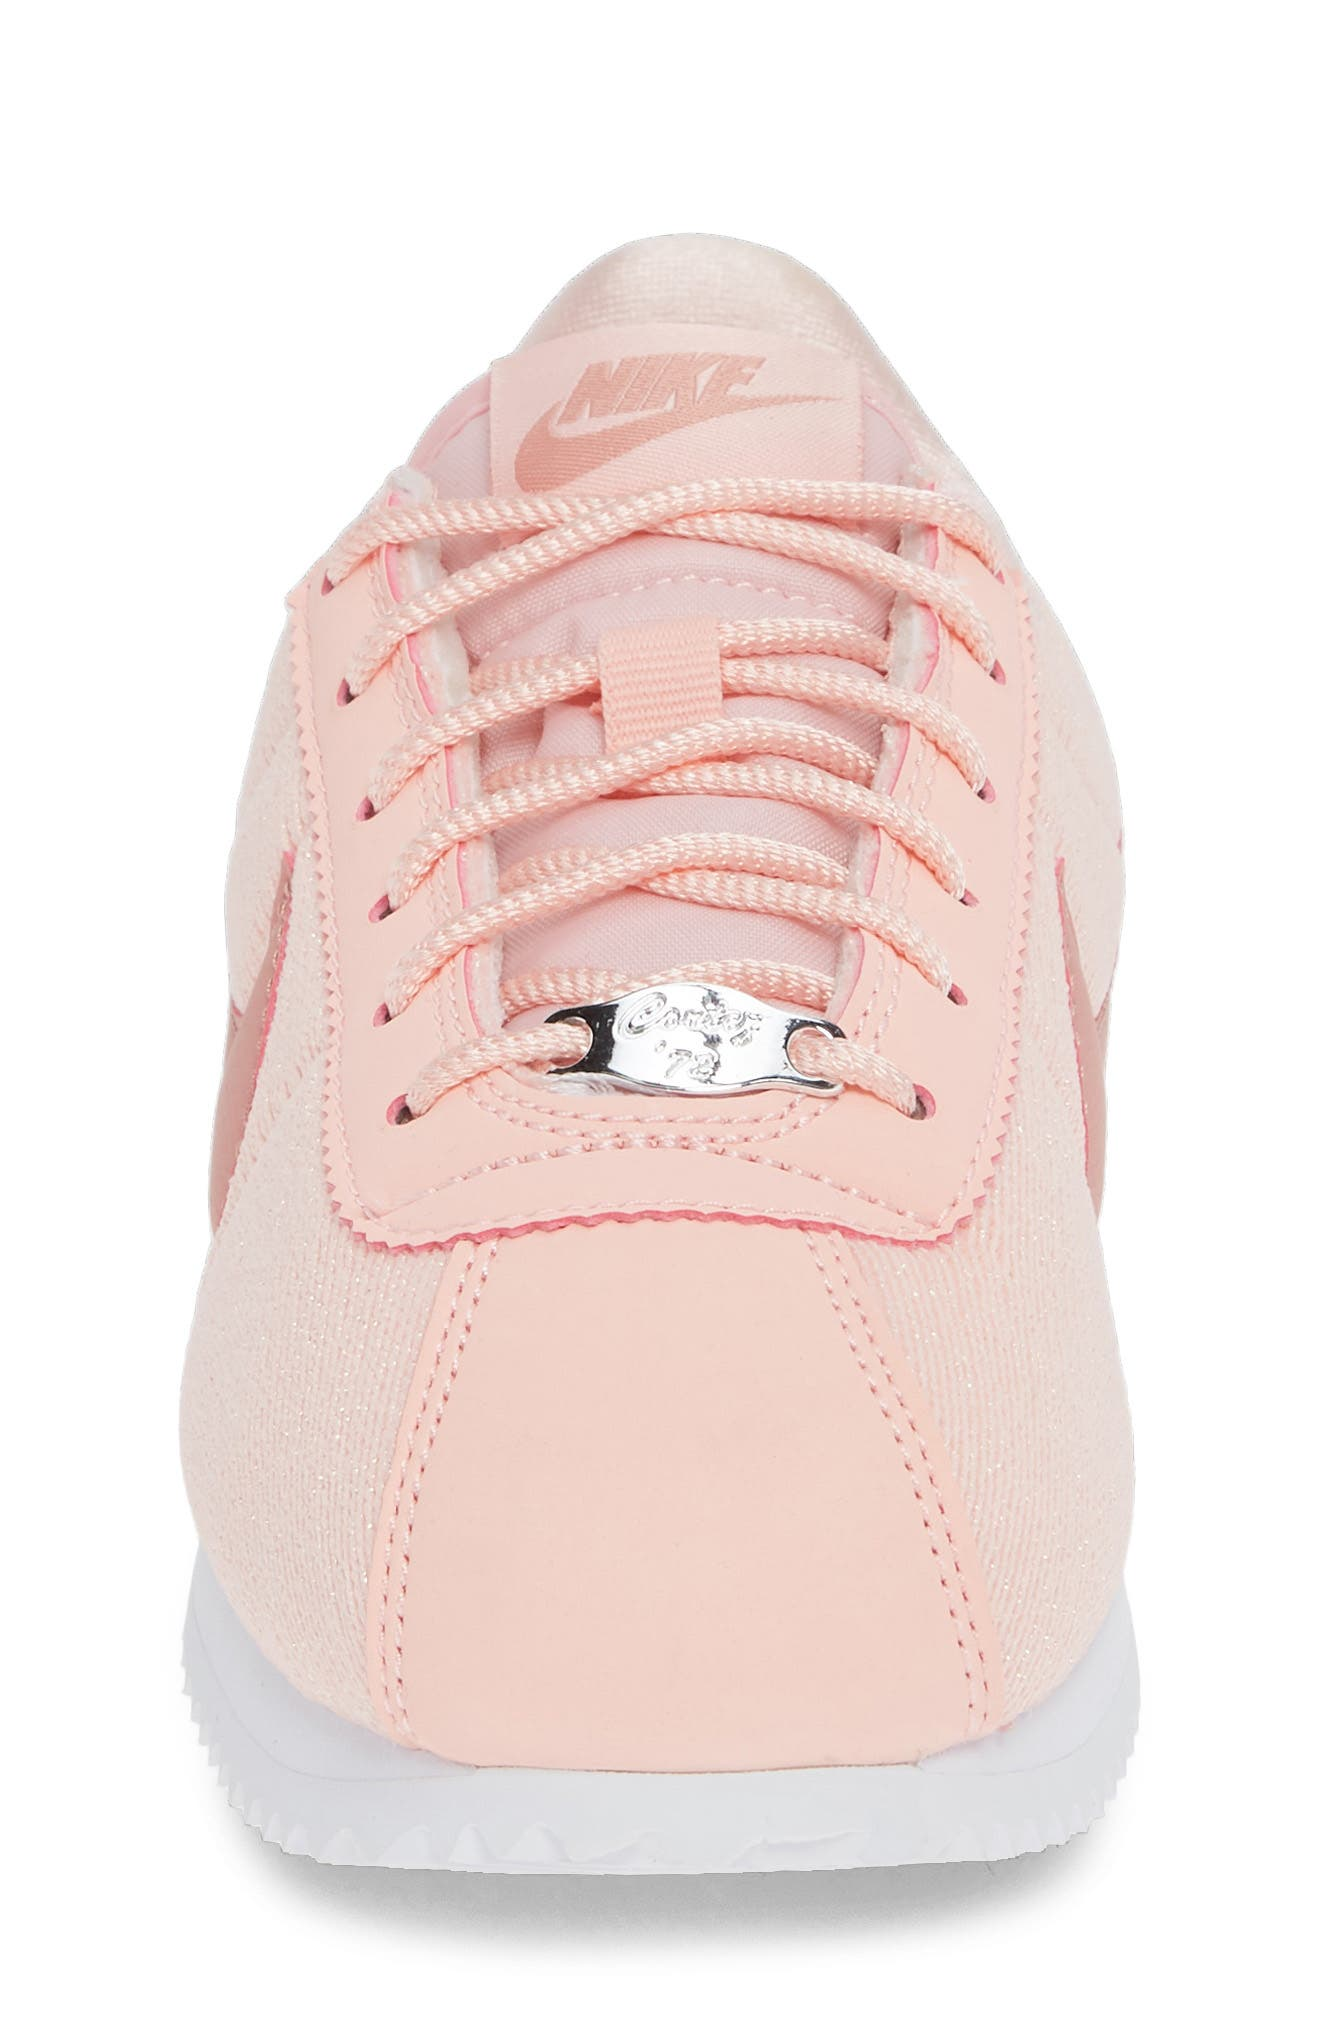 Cortez Basic TXT SE Sneaker,                             Alternate thumbnail 4, color,                             STORM PINK/ RUST PINK/ WHITE